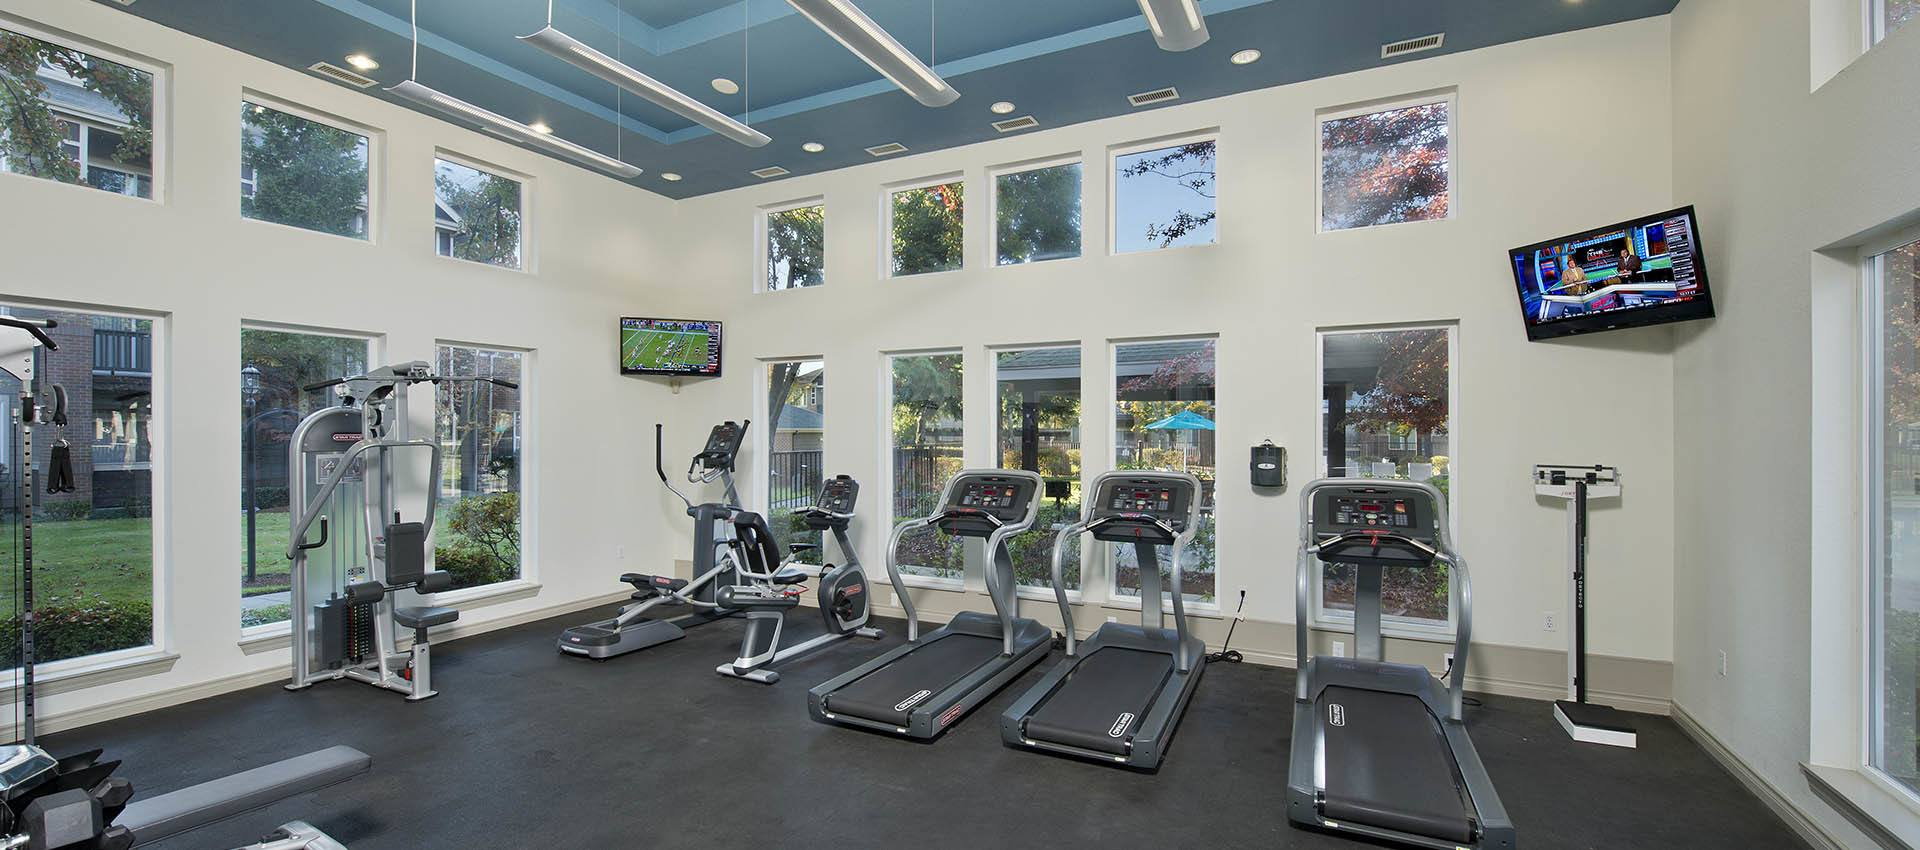 Fitness center at Cortland Village Apartment Homes in Hillsboro, OR